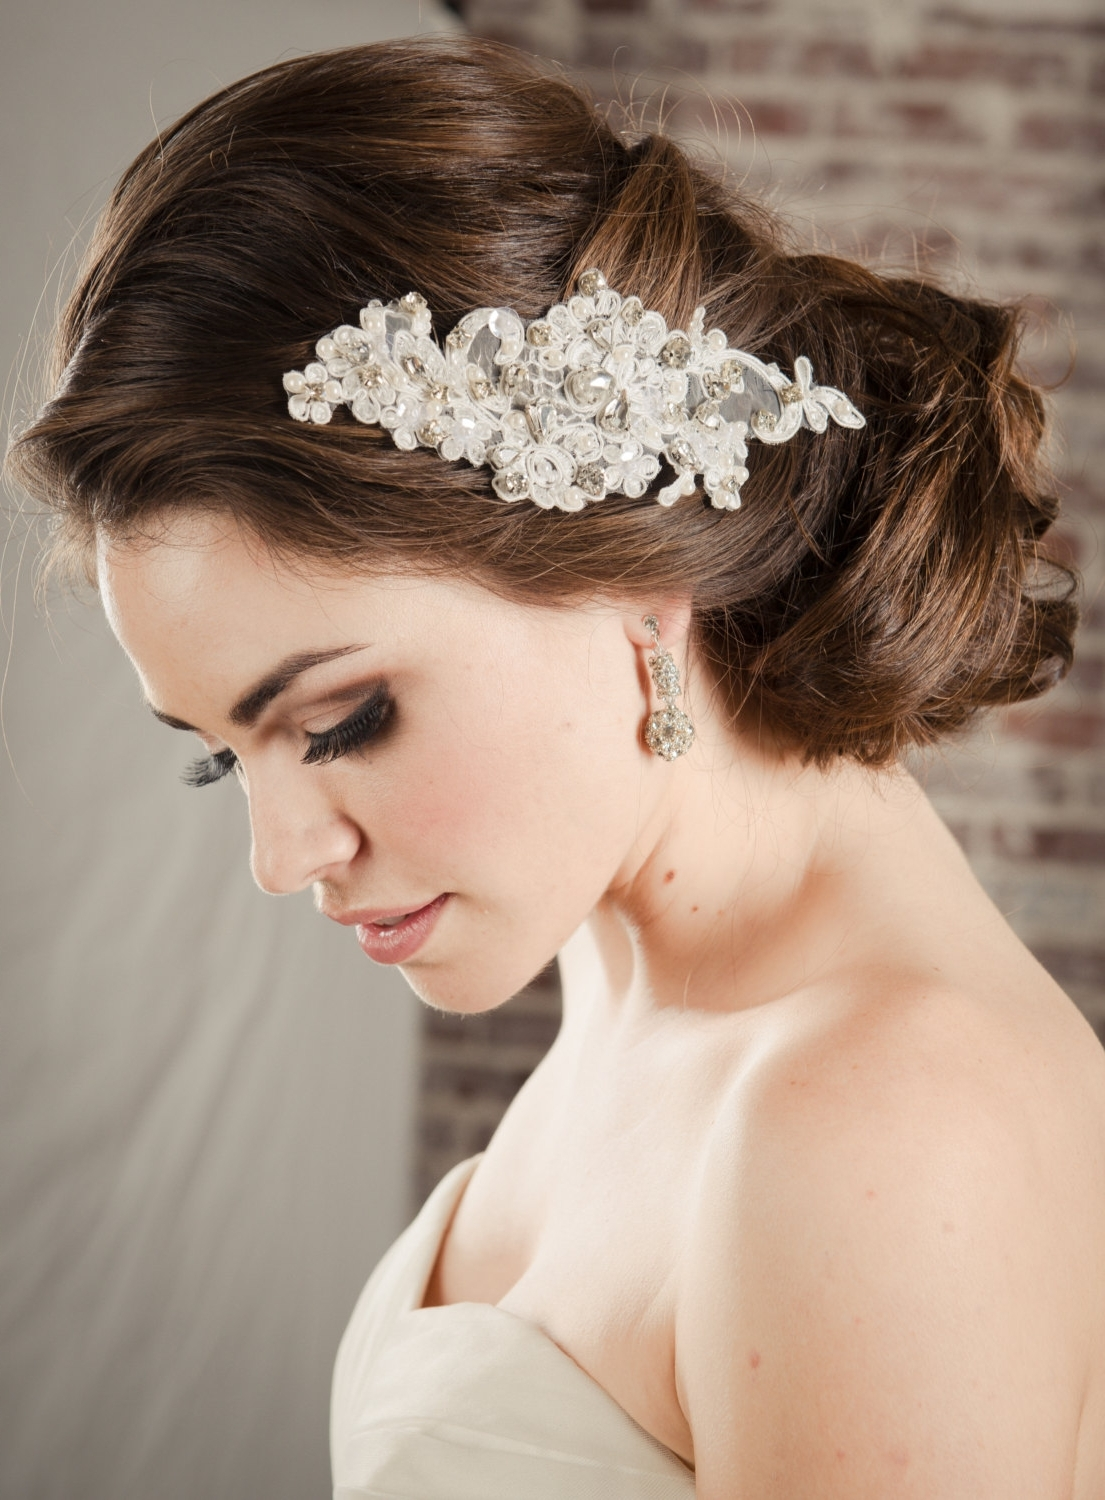 Bridal Hairstyles To Be Stylish – Bridal Hairstyles Ideas Regarding Well Known Wedding Hairstyles With Hair Piece (View 2 of 15)